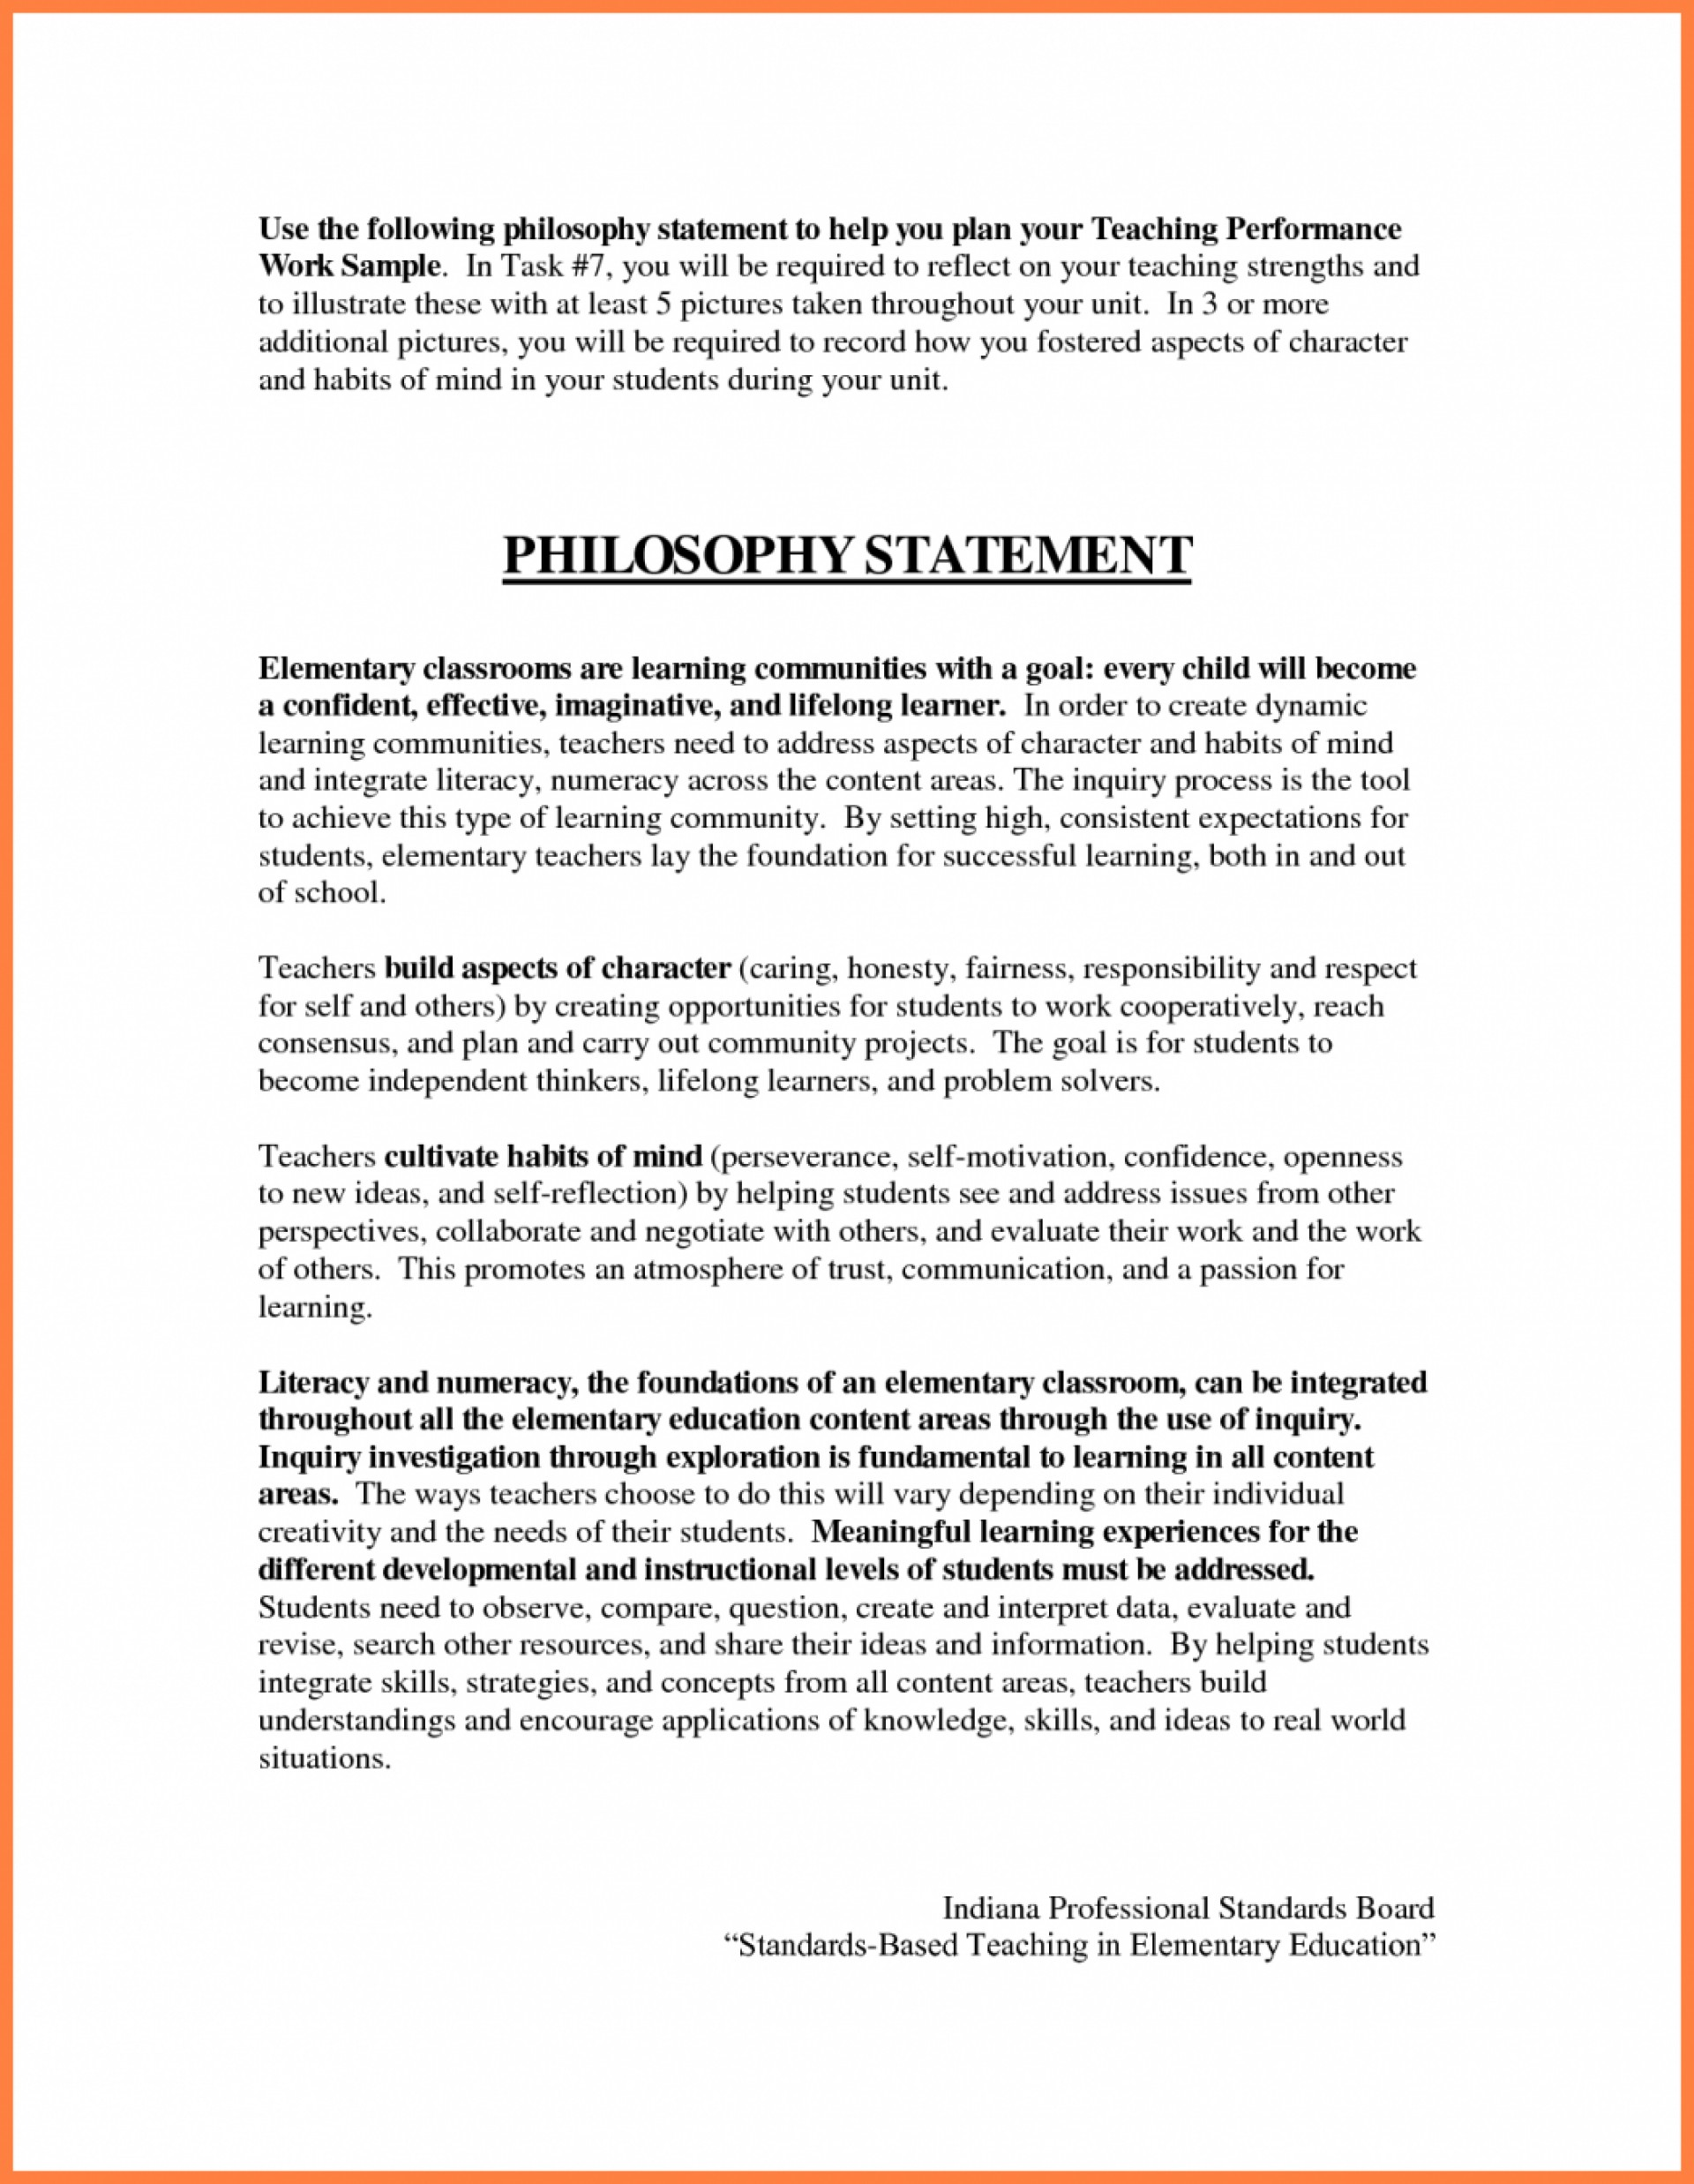 013 Essay Exampleaching Philosophy Statement Coursework Academic Writing Of Early Childhood Education Essays Self Reflection On My Personal 1048x1351 Why I Want To An Exceptional Be Teacher A Preschool 1920